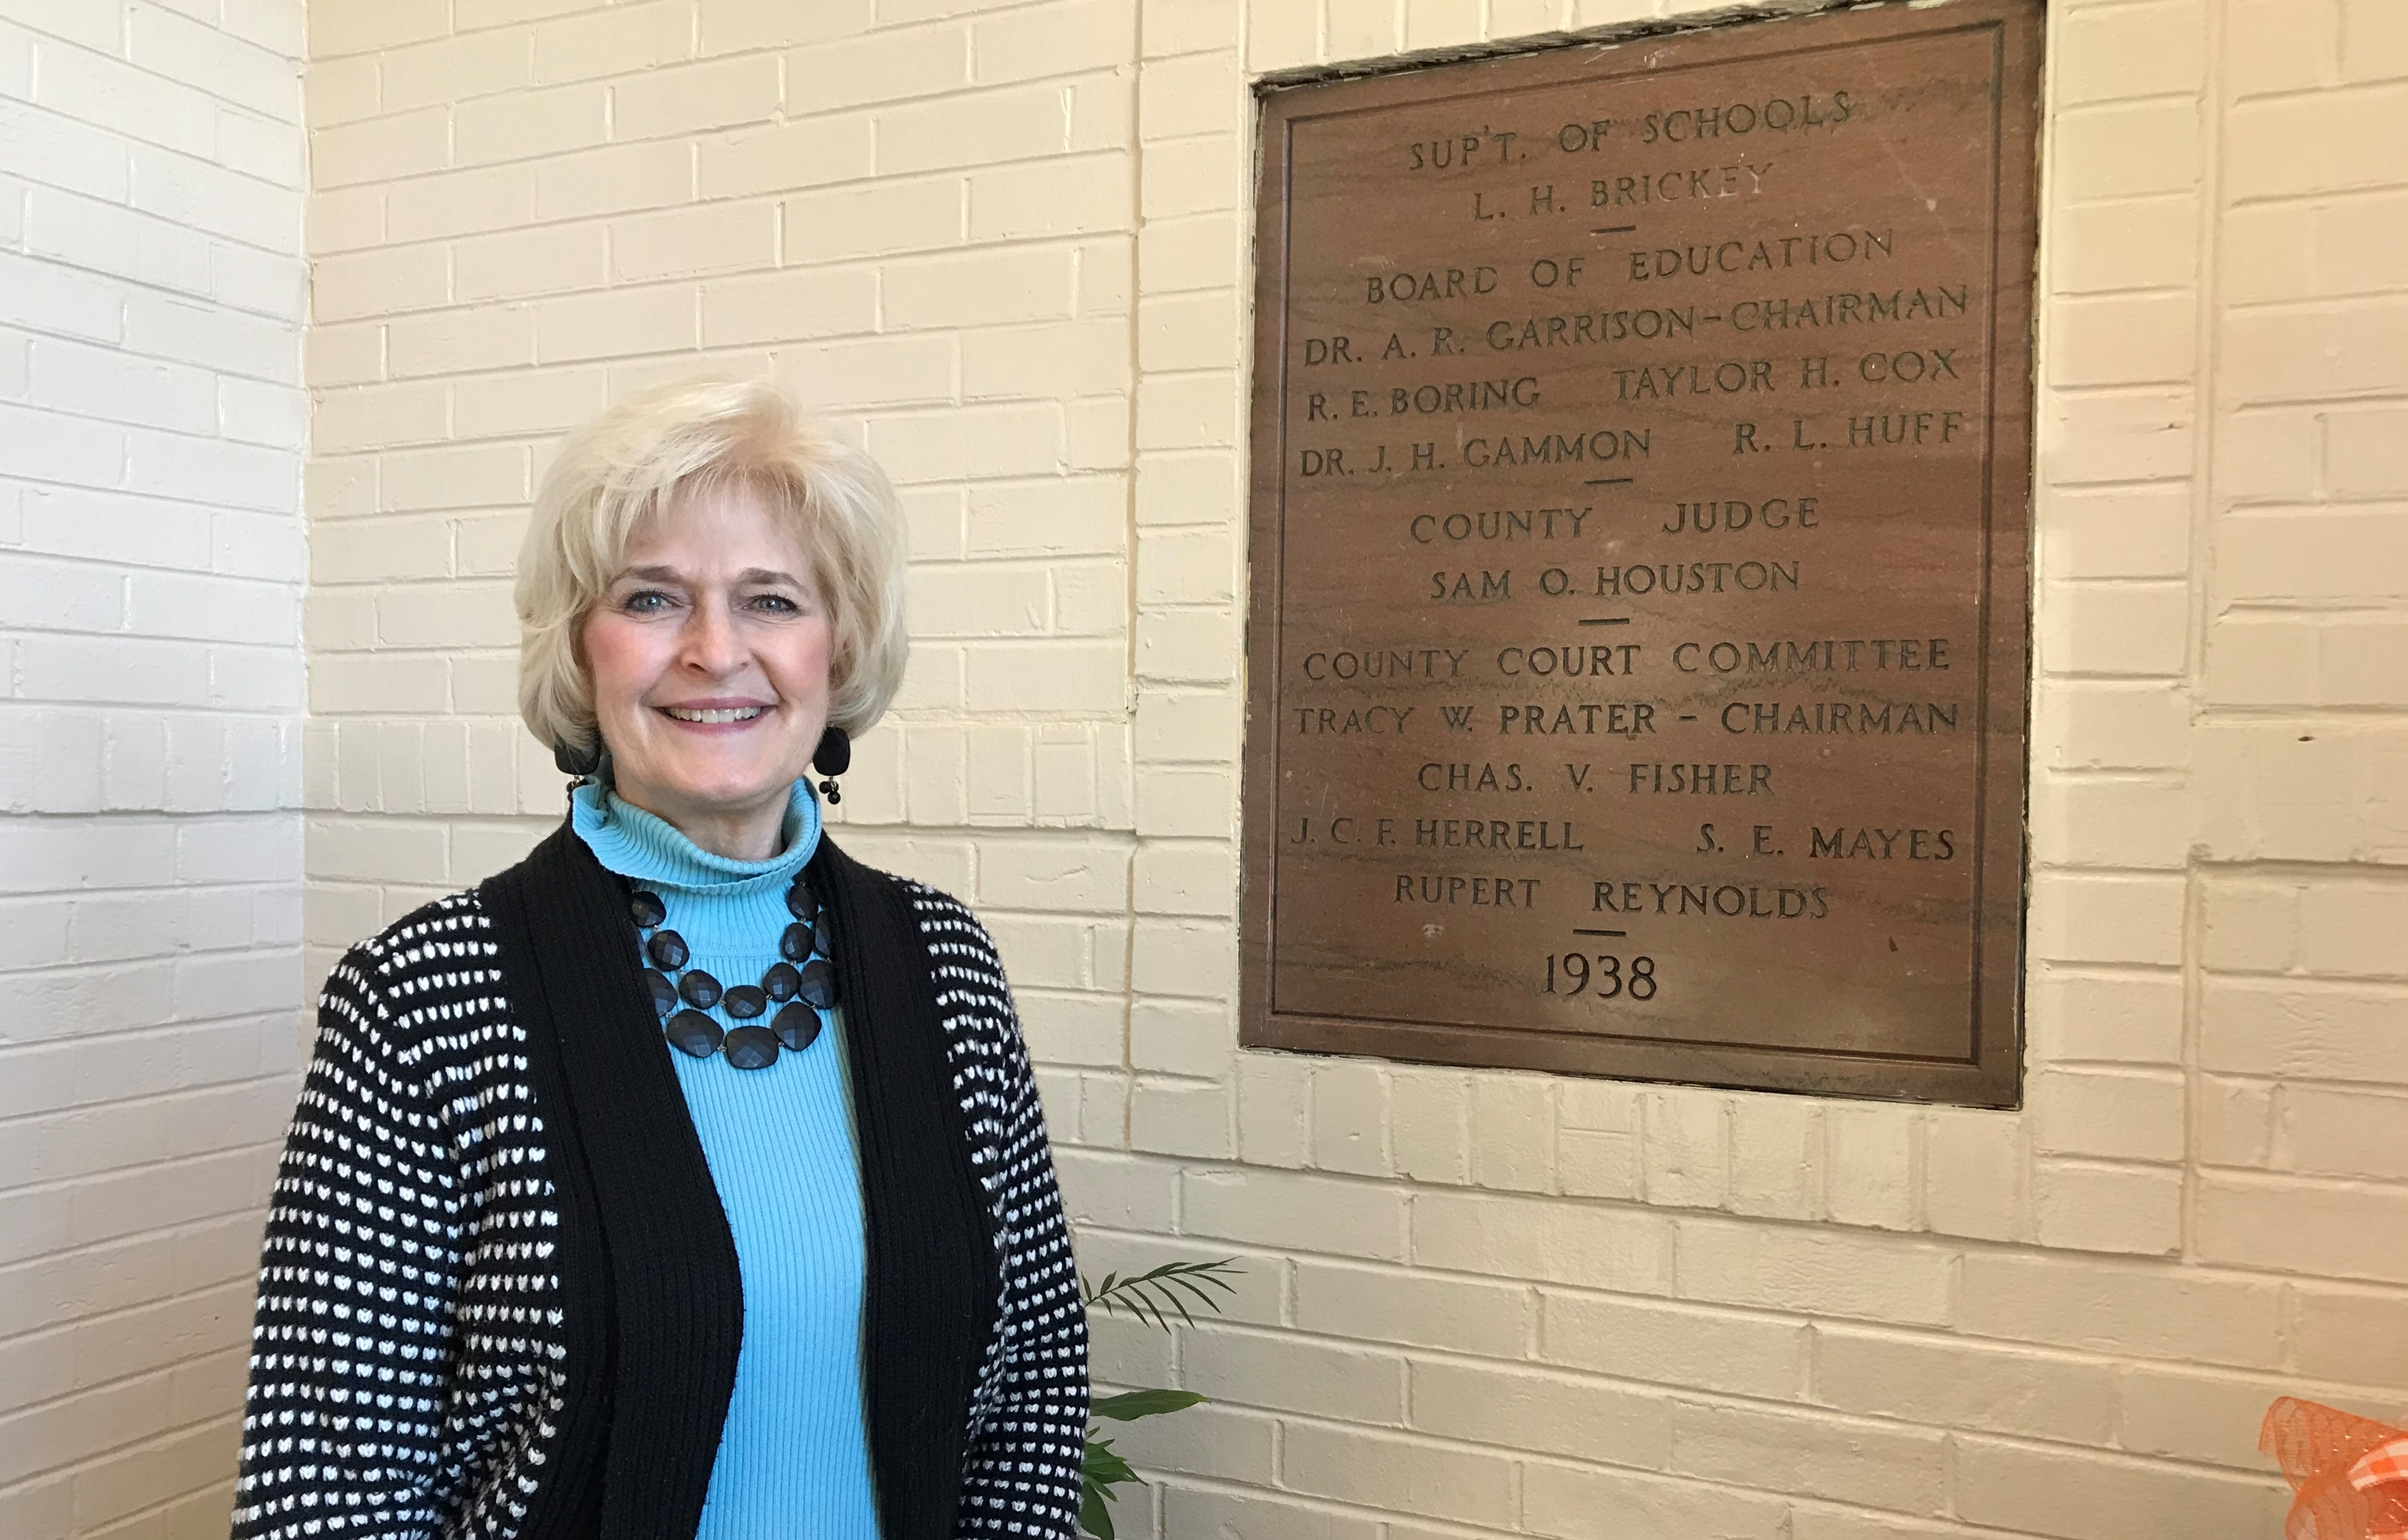 Susan Dunlap, Principal of Bearden Elementary School, stands next to a sign commemorating the school's opening in 1938.